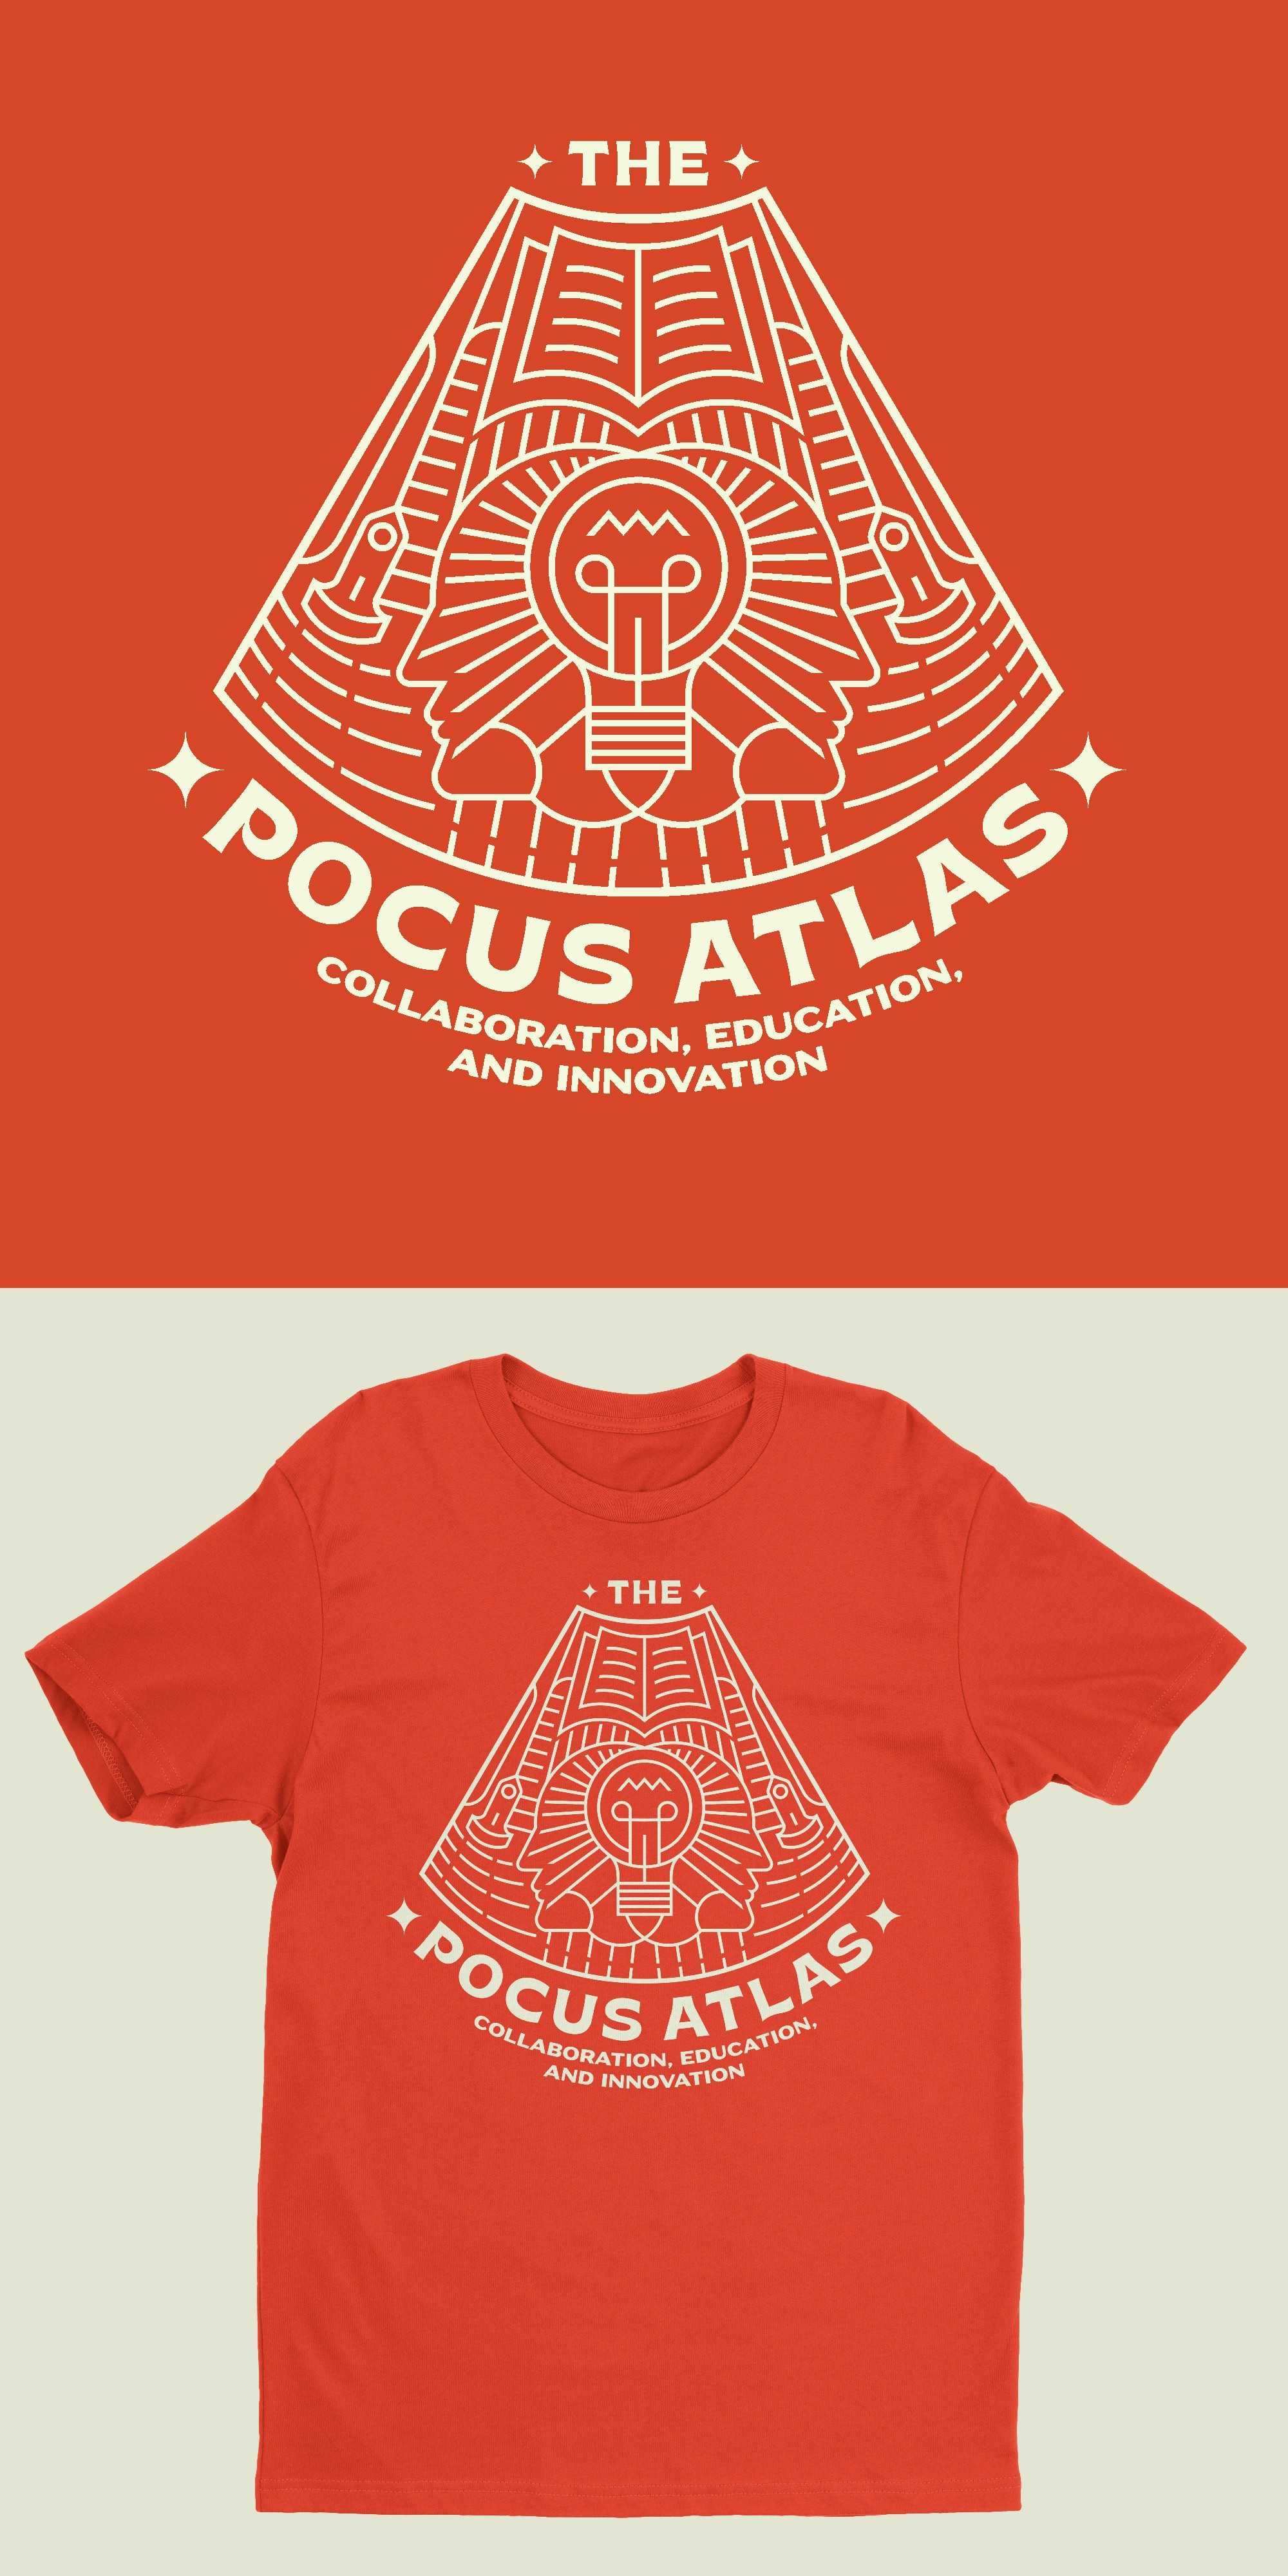 The POCUS Atlas T-shirt